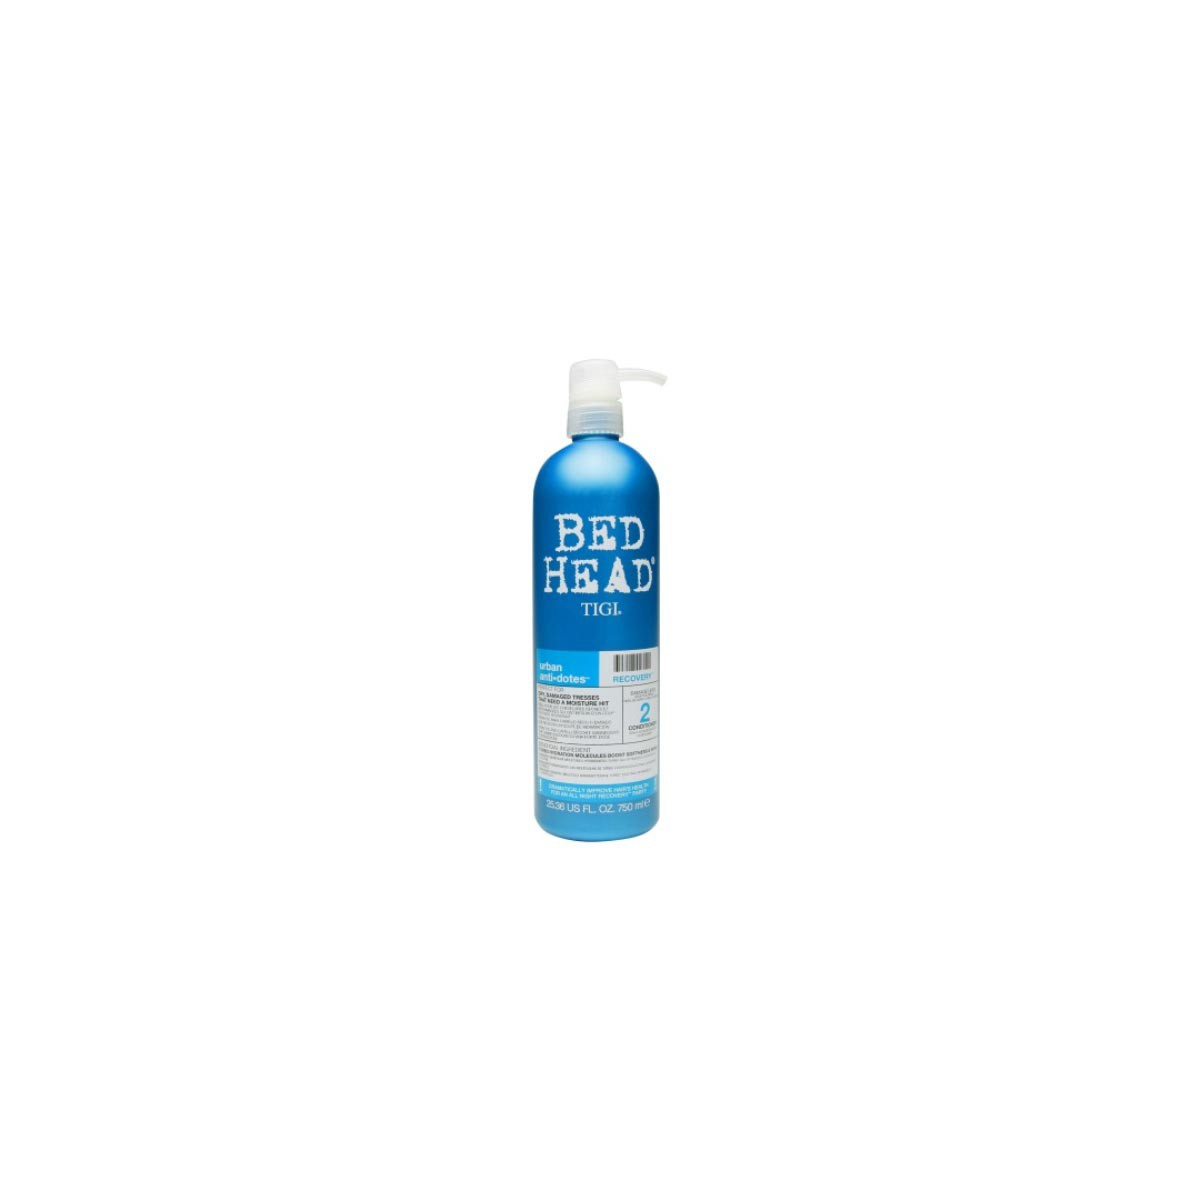 Tigi fragrances Bed Head Recovery Conditioner 750ml